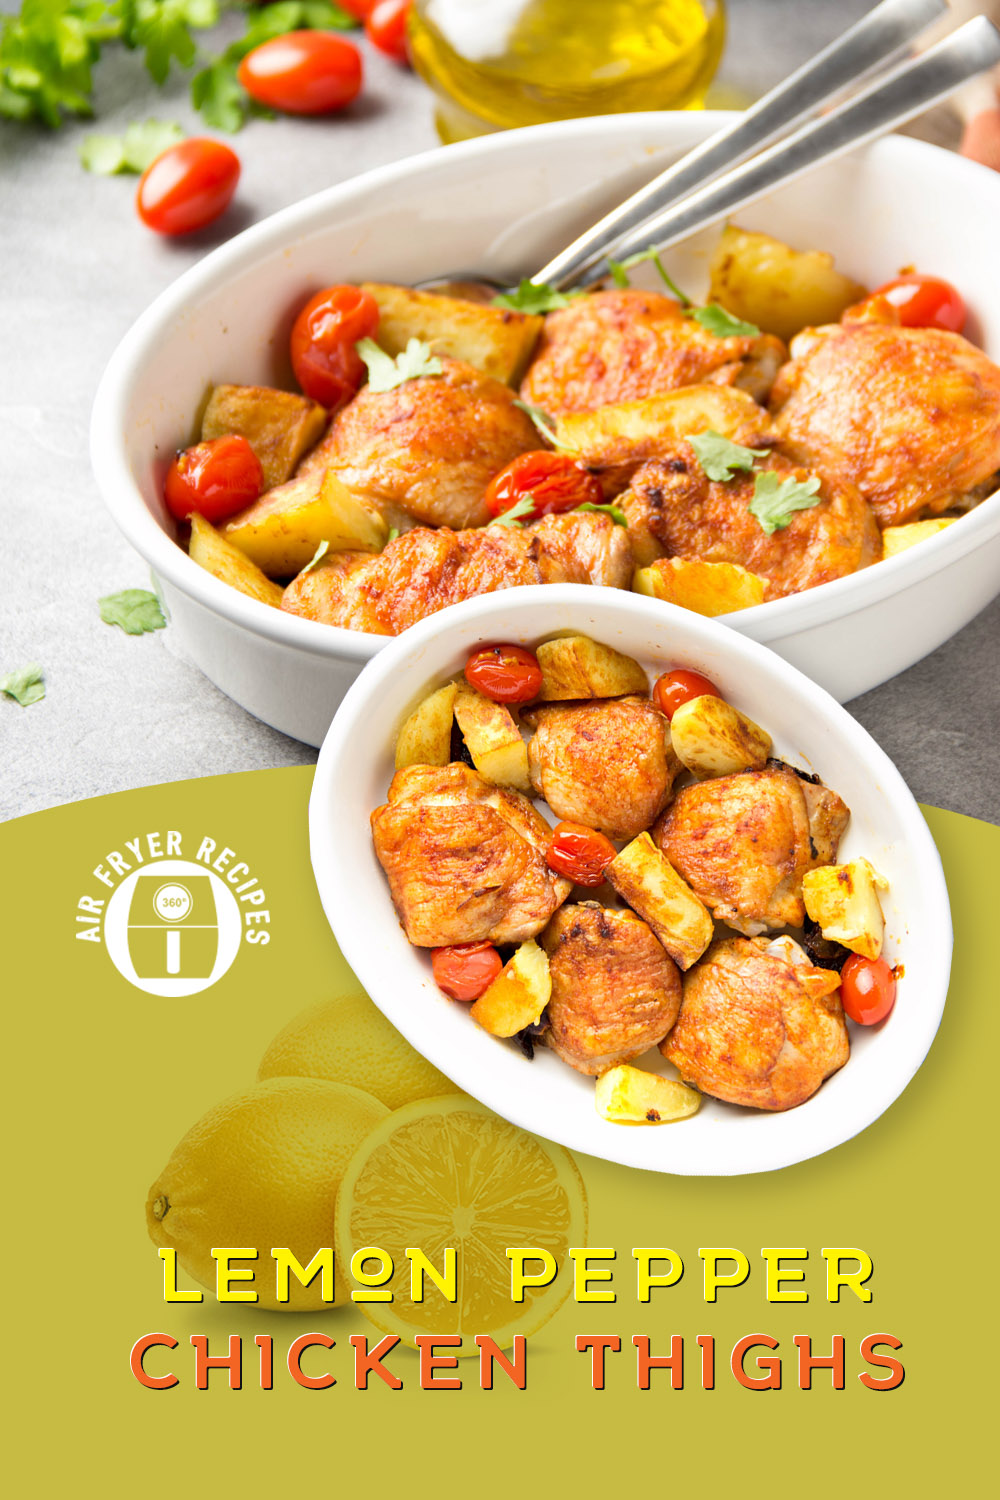 A delicious and easy to prepare recipe using chicken thighs and an air fryer. The lemons helps to bring out the flavors of this amazingly simple dinner recipe. A quick and easy recipe that is ready in 20 minutes. #recipesforairfryer #chickenrecipes #airfryerrecipeschicken #airfryermeals #dinnerideas #mealideas #mealtime #chickendinner